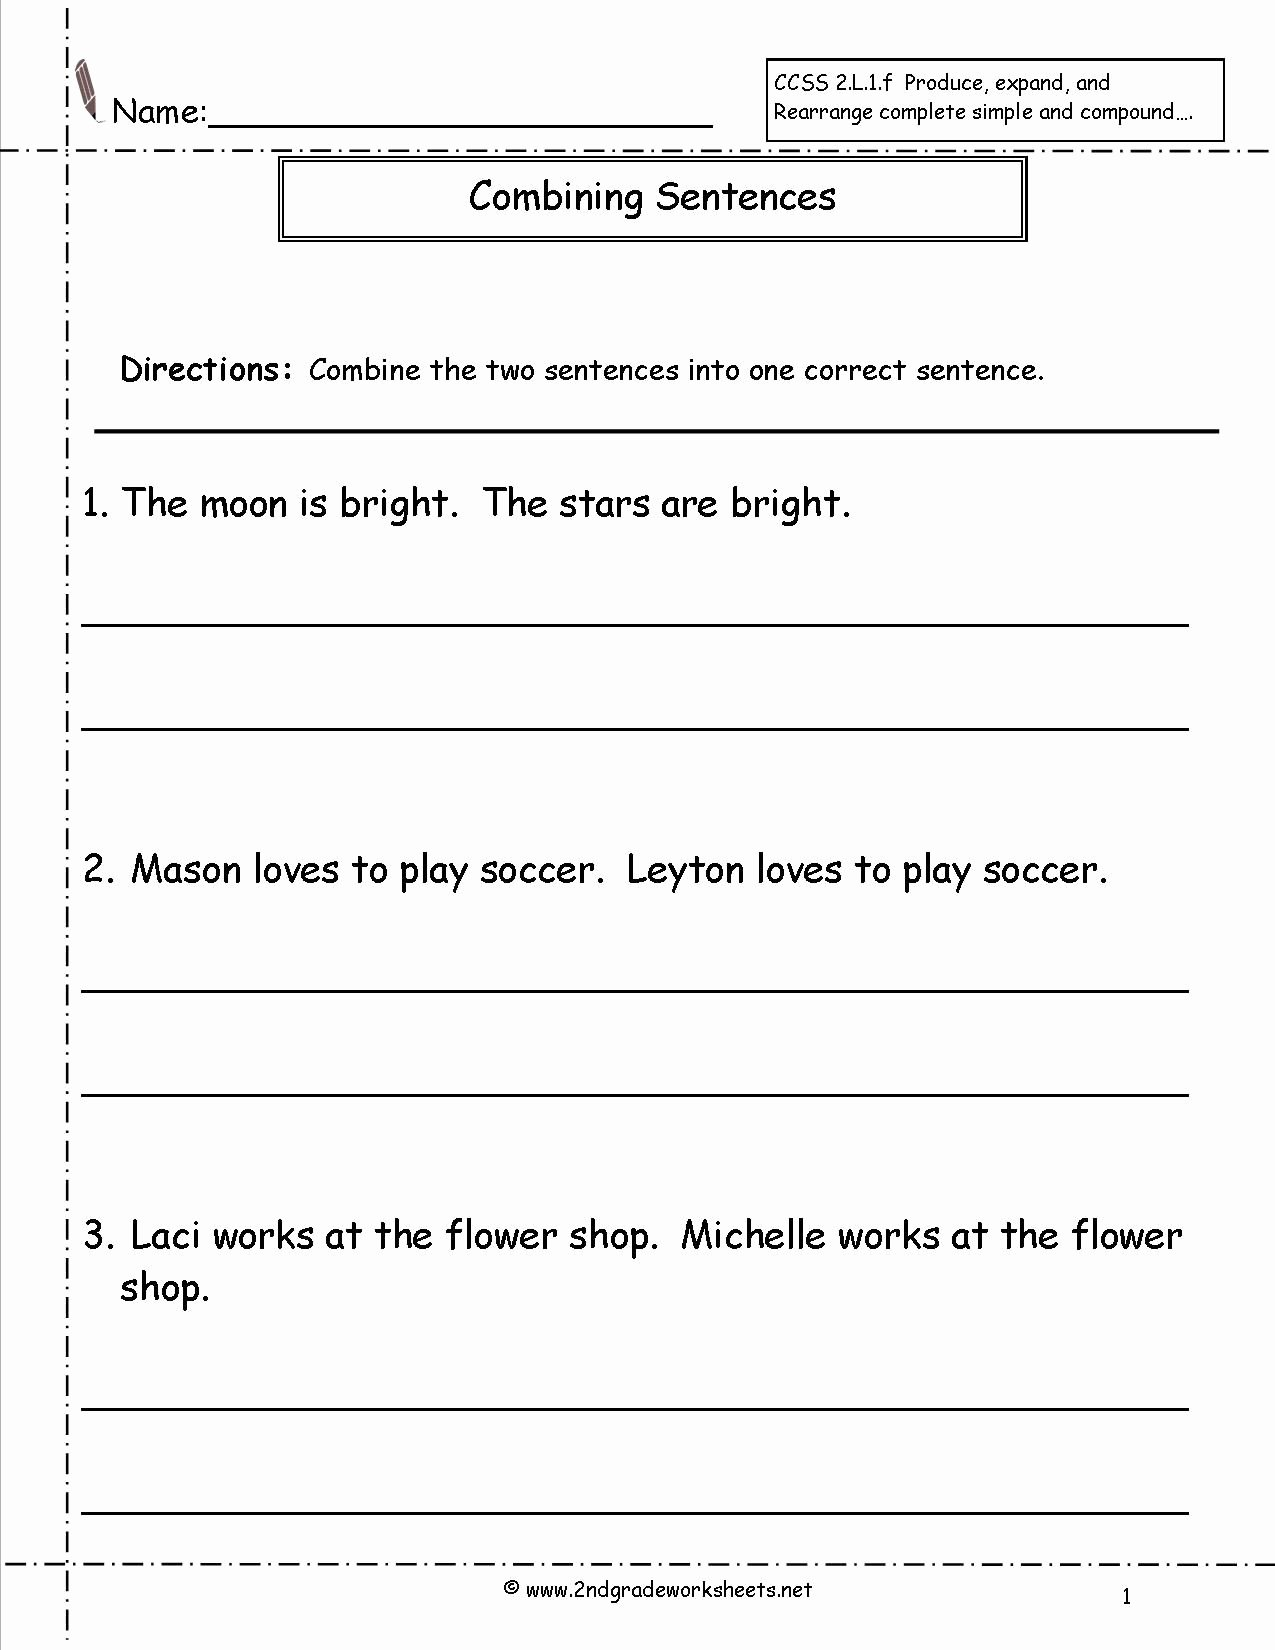 Combining Sentences Worksheet 3rd Grade Fresh Bining Sentences Worksheet